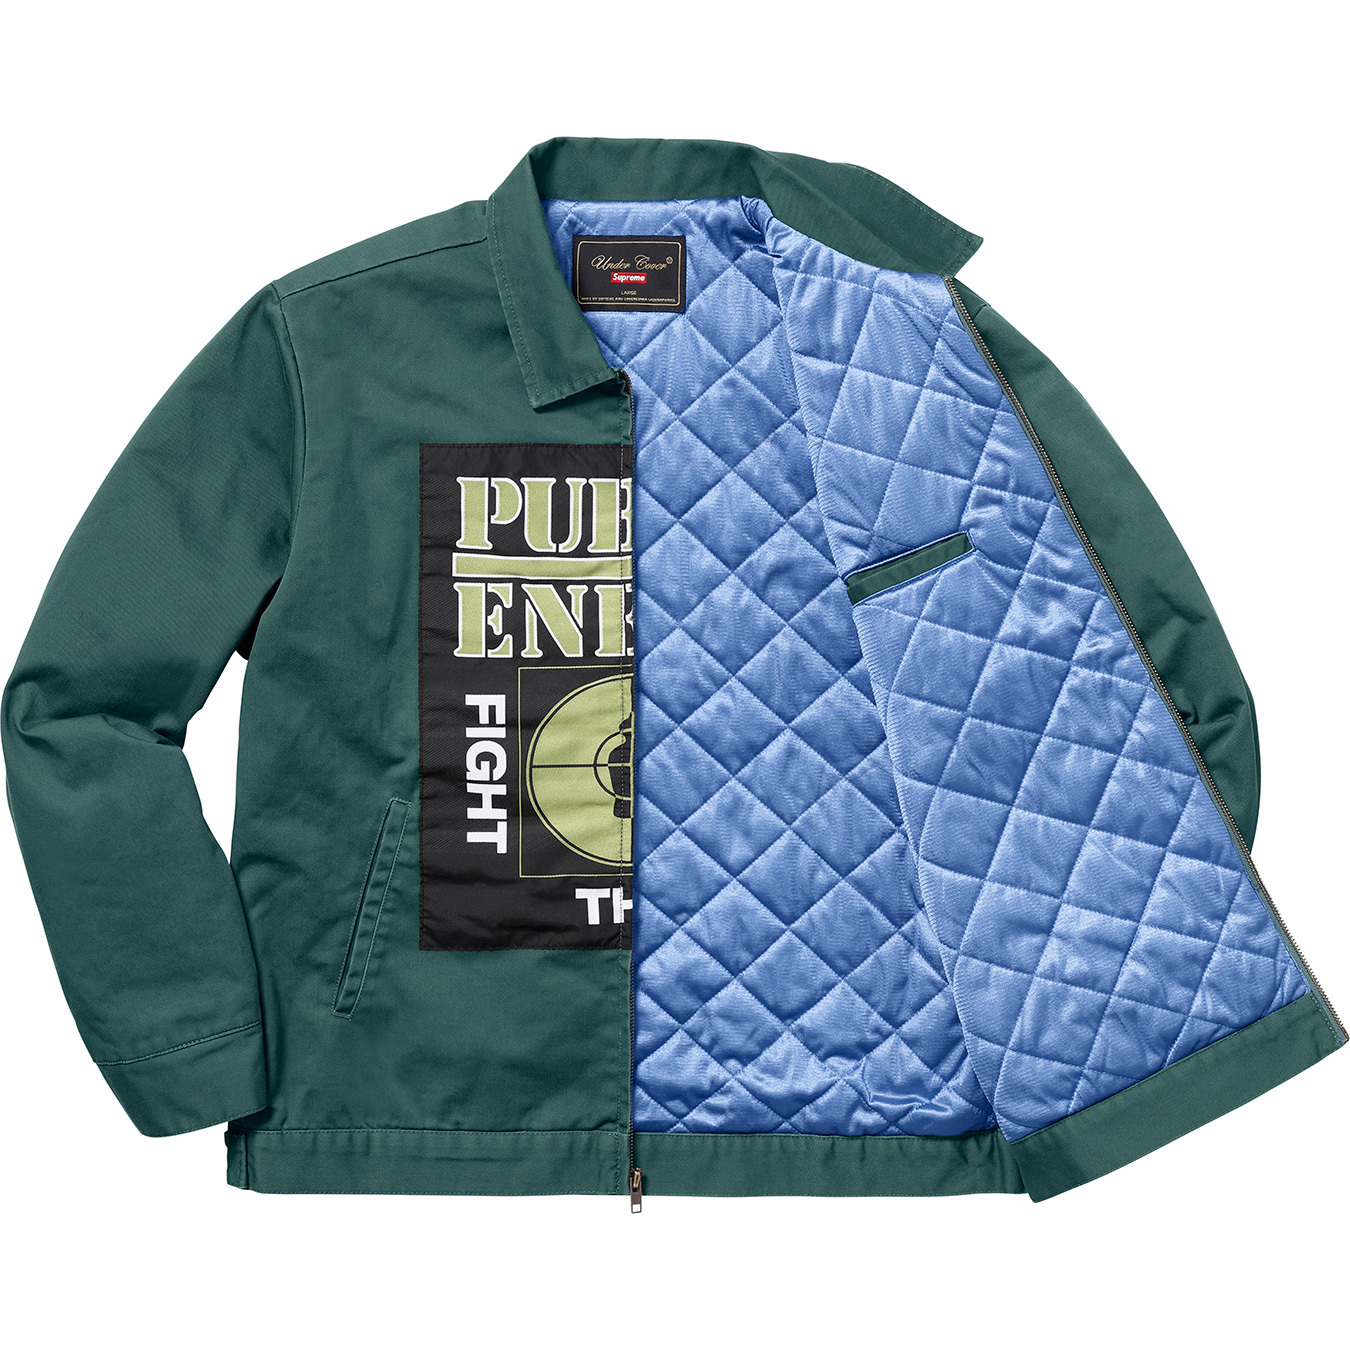 supreme-undercover-public-enemy-18ss-week4-release-20180317-work-jacket-with-woven-patch